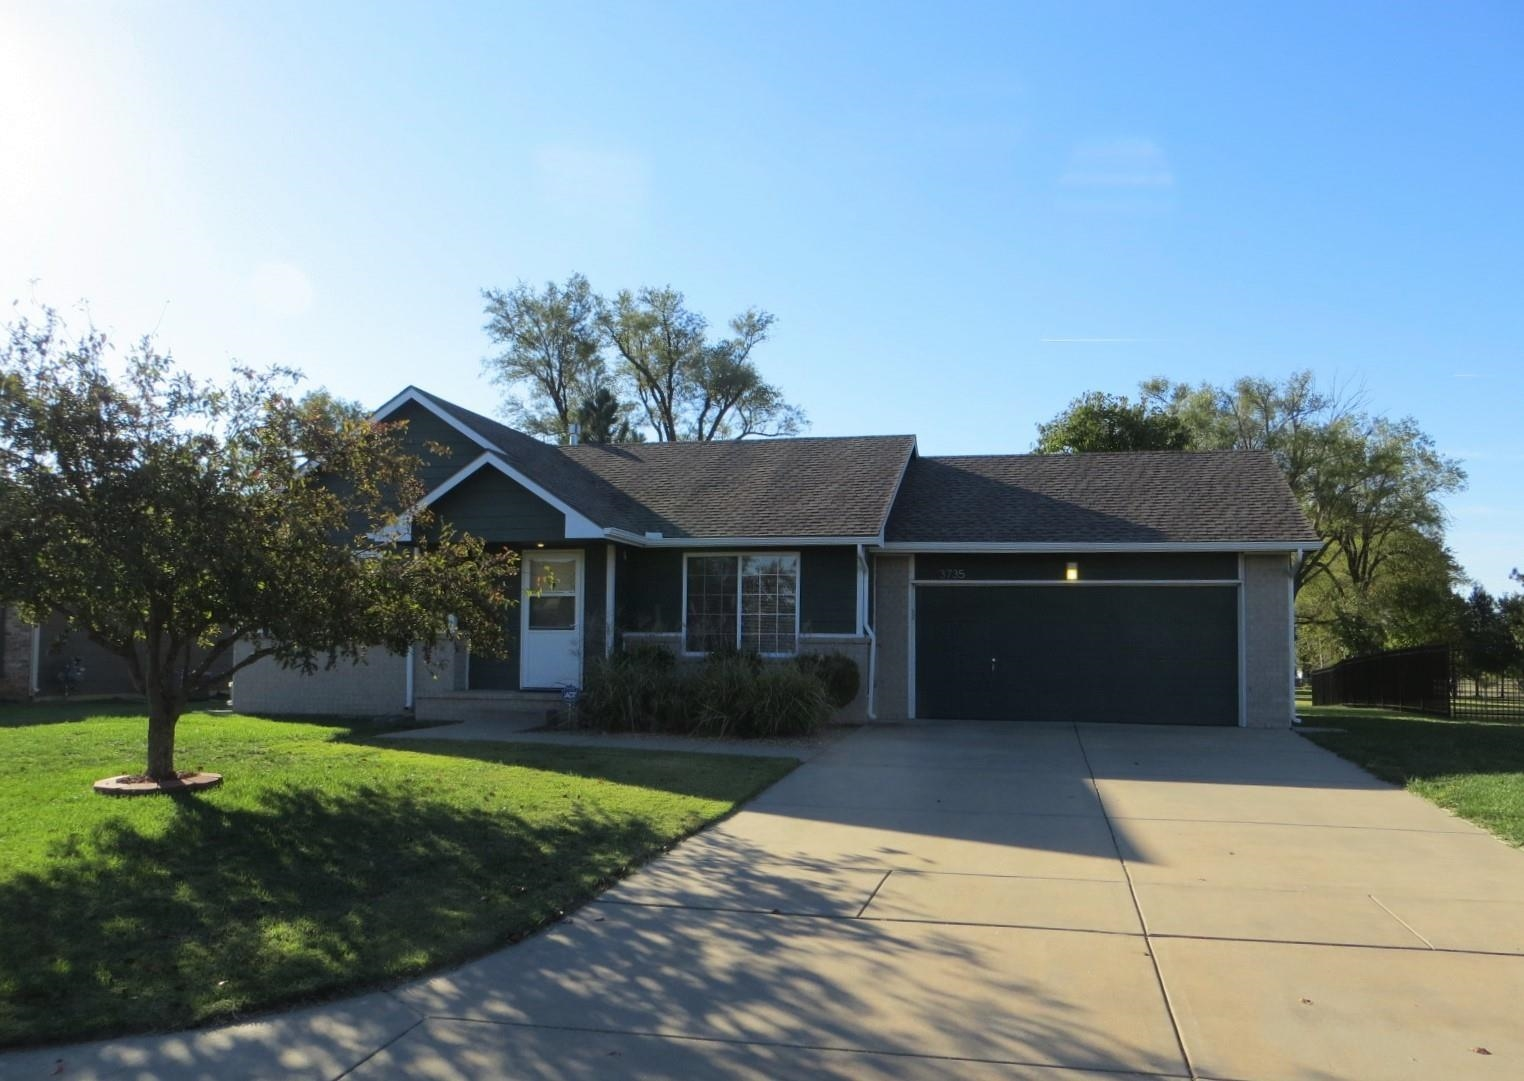 Attractive one owner home in beautiful subdivision with lake and playground. Home shows pride of own